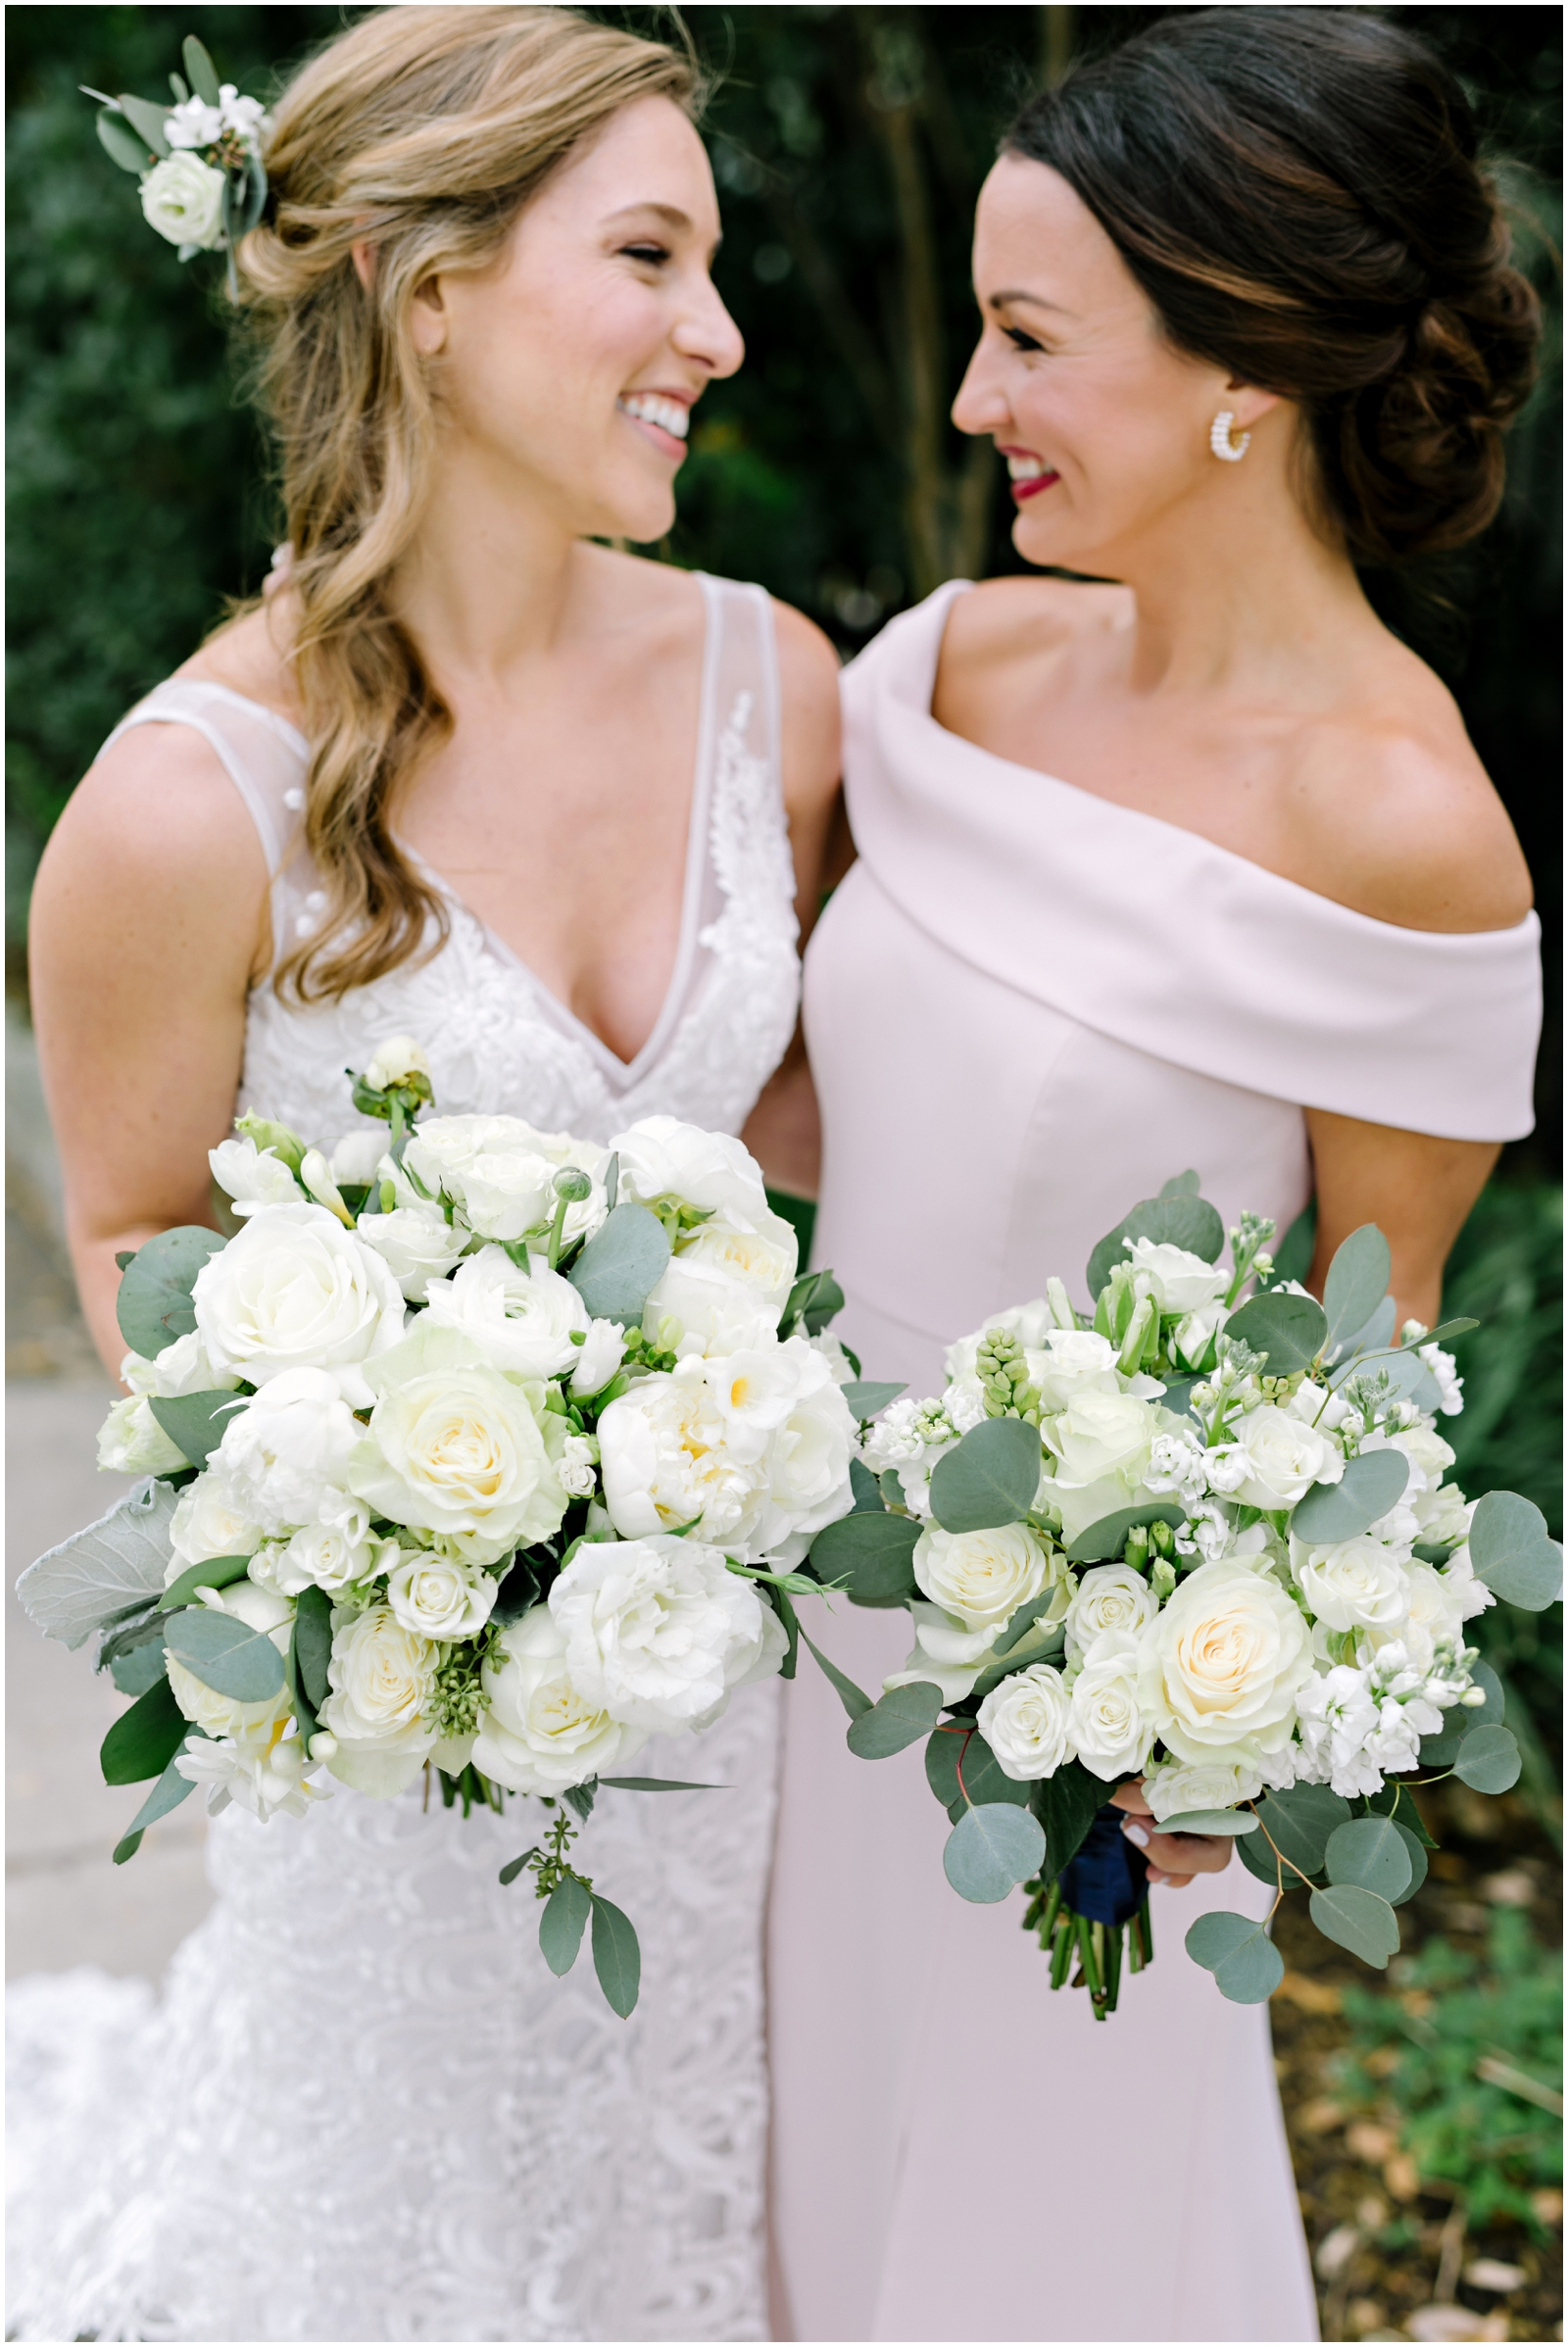 Bride and bridesmaids holding white and greenery wedding bouquet